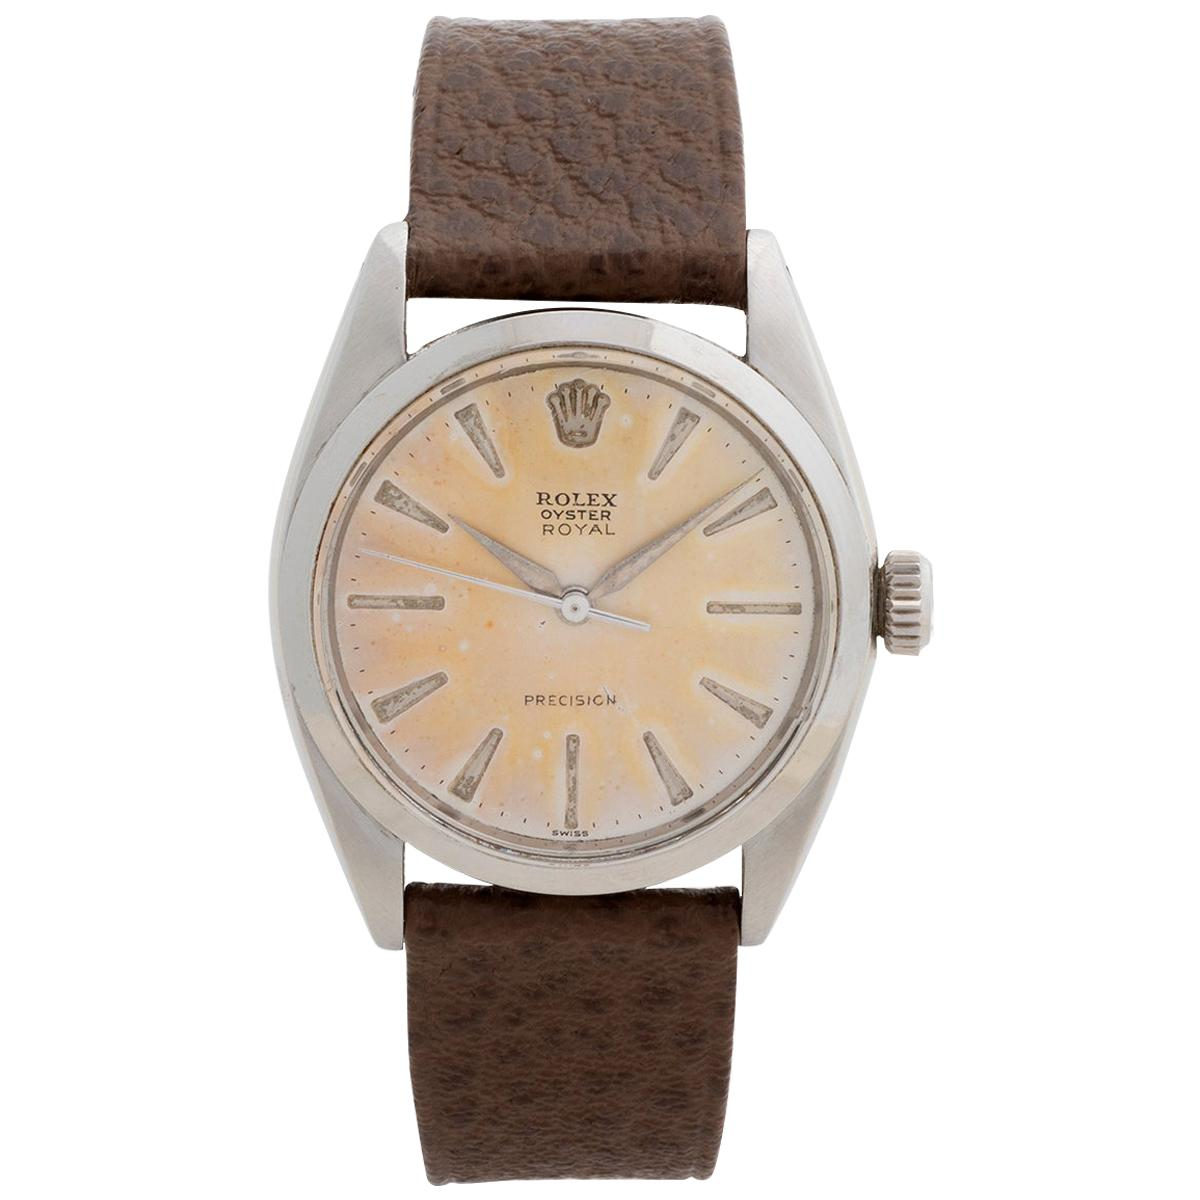 Vintage Rolex Oyster Royal Precision Reference 6426, Excellent Condition